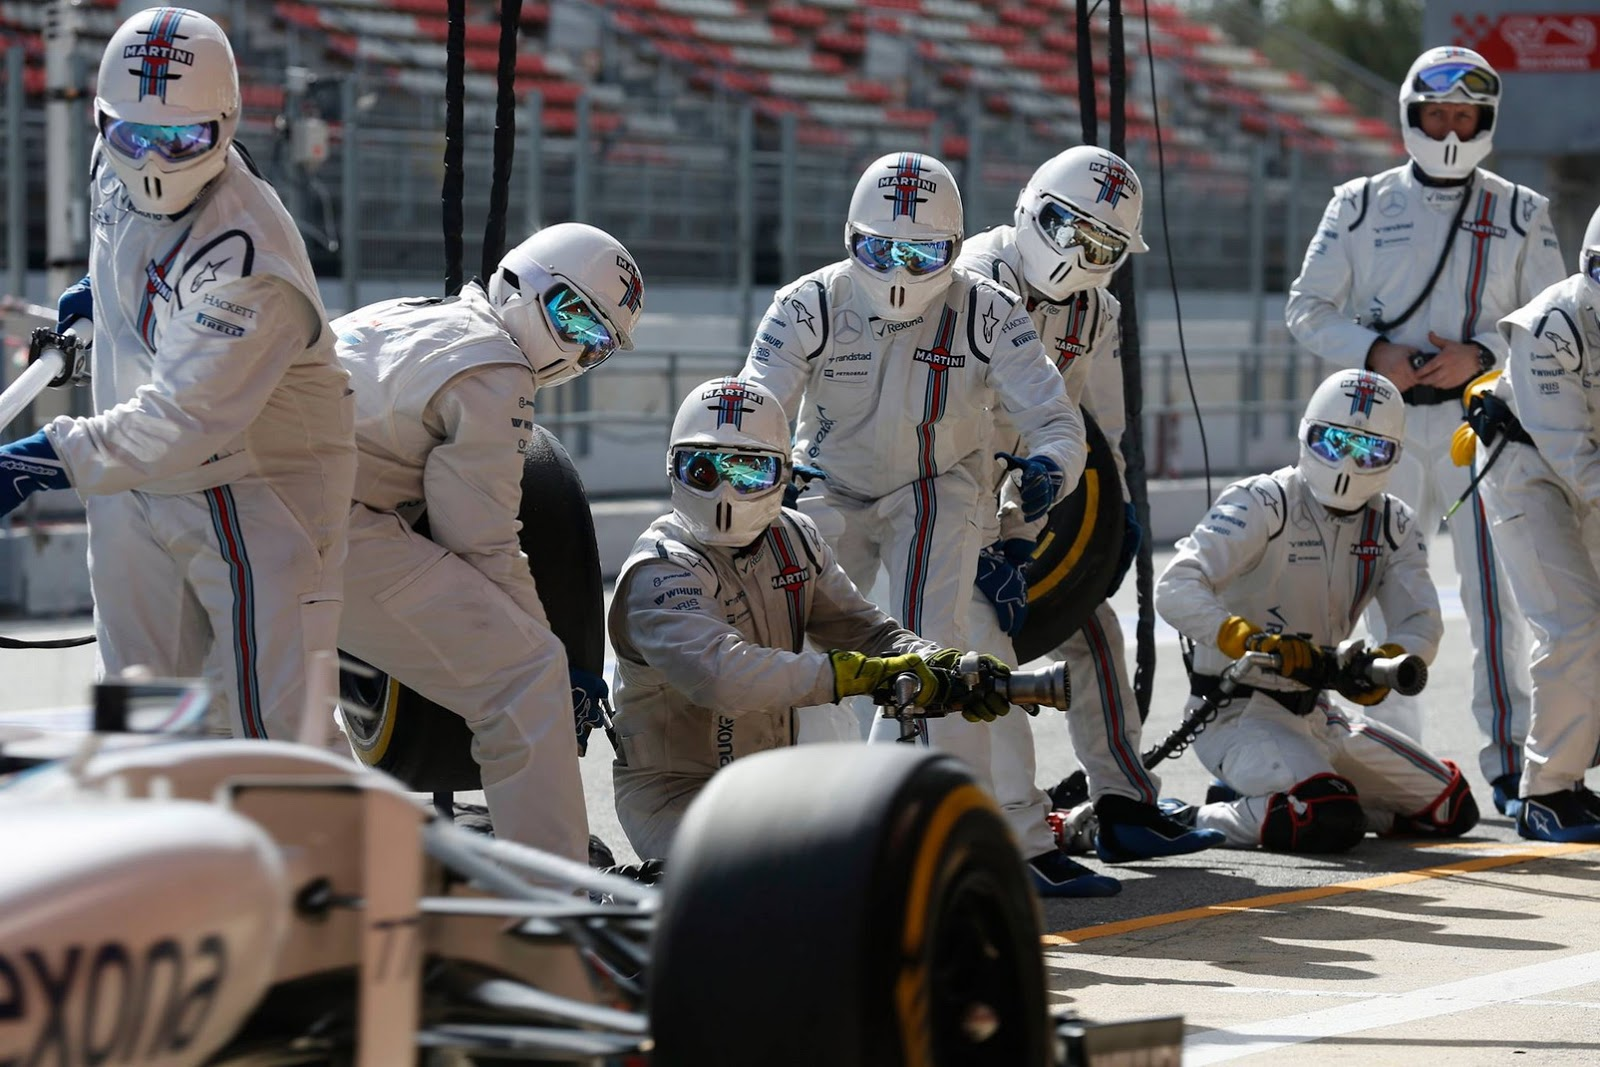 Gli uomini Williams pronti al pit stop